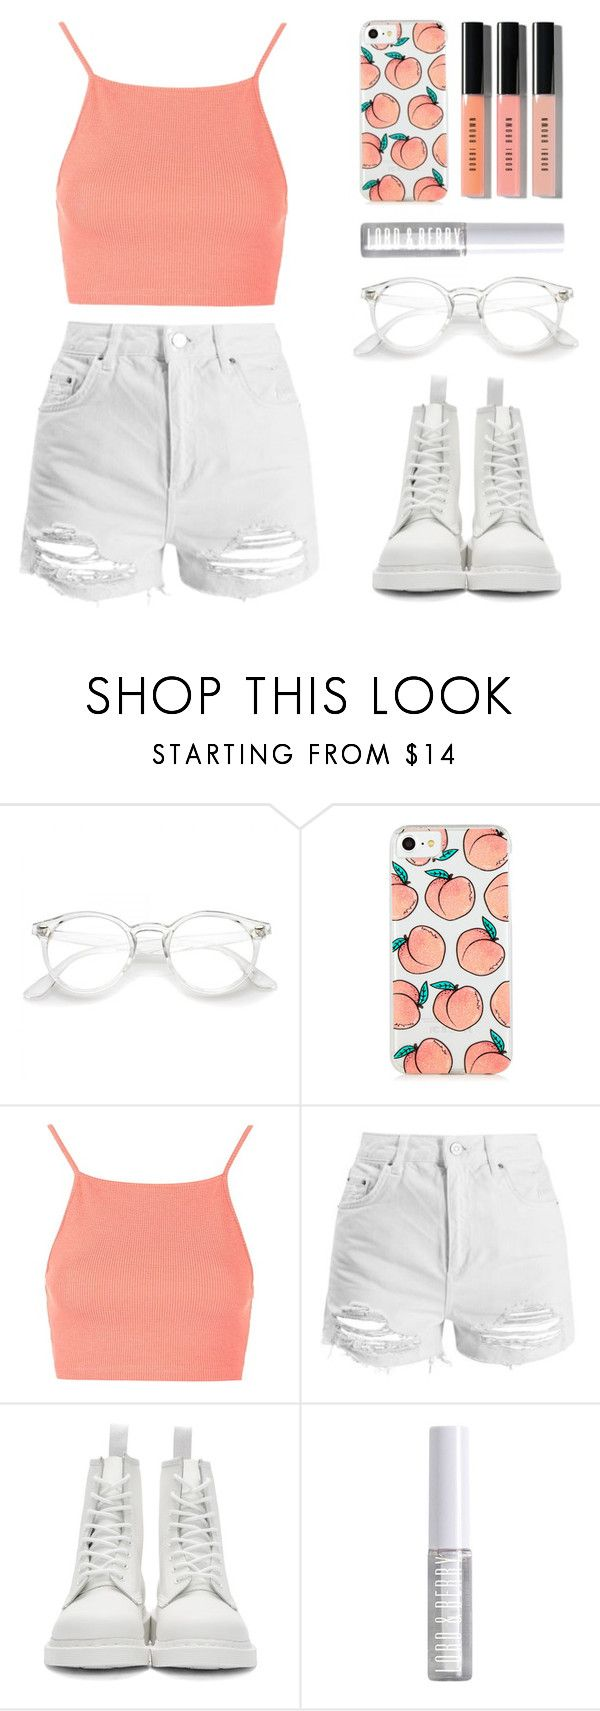 """""""Peach mode : on"""" by baludna ❤ liked on Polyvore featuring Topshop, Dr. Martens, Lord & Berry and Bobbi Brown Cosmetics"""